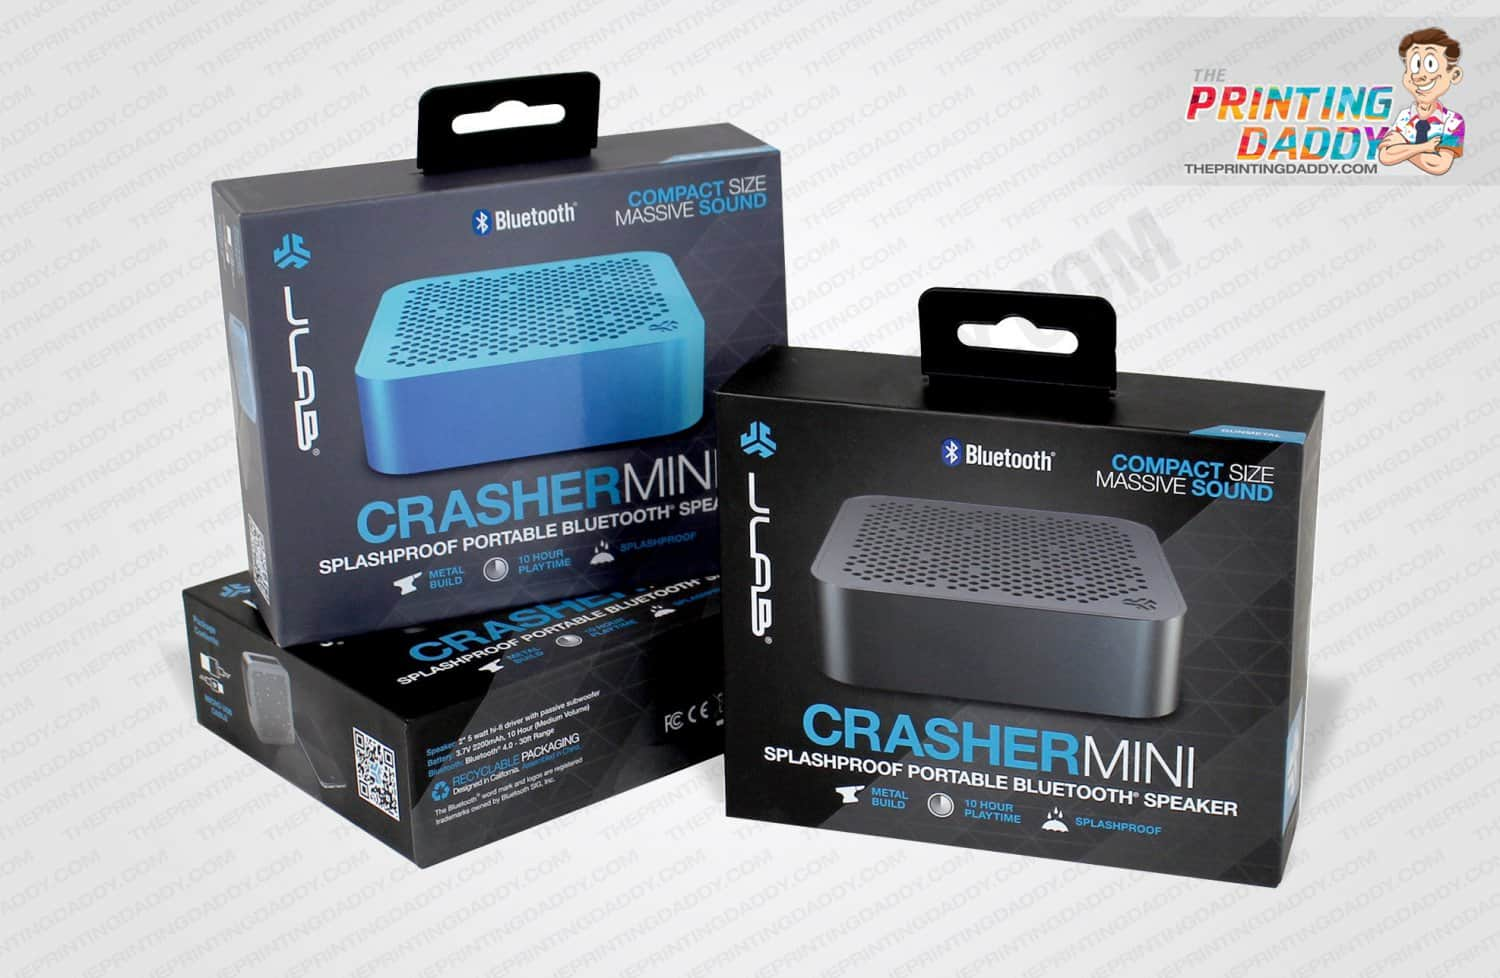 Wireless Speaker Packaging Boxes The Printing Daddy